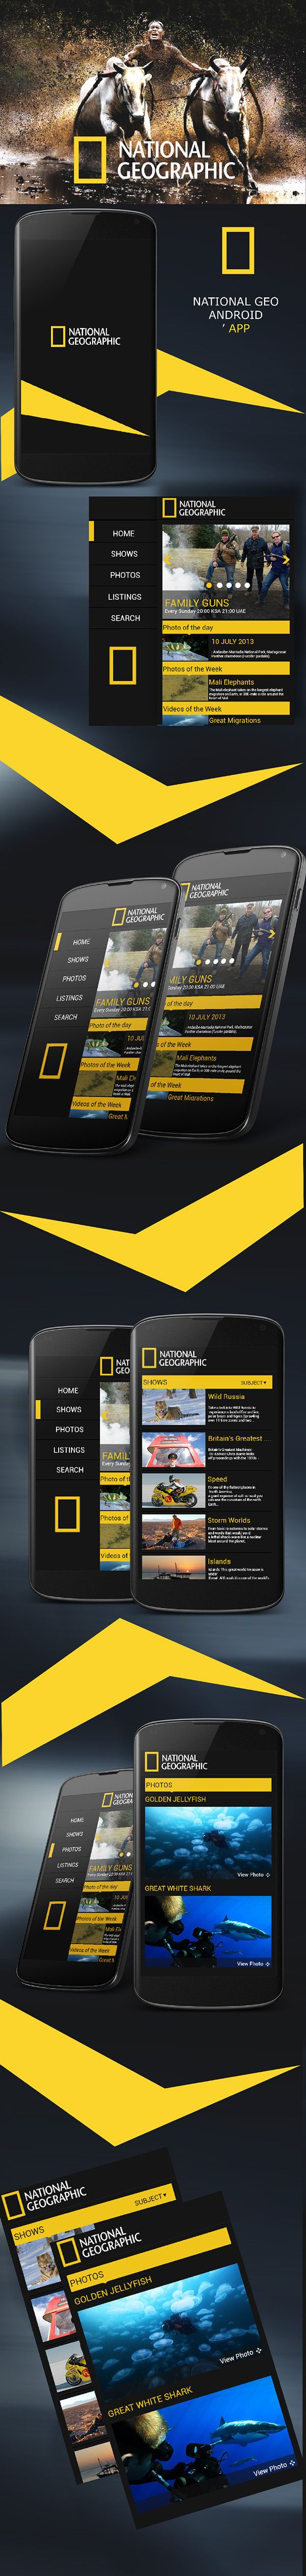 National Geographic Android App on Behance #NatGeo #UX